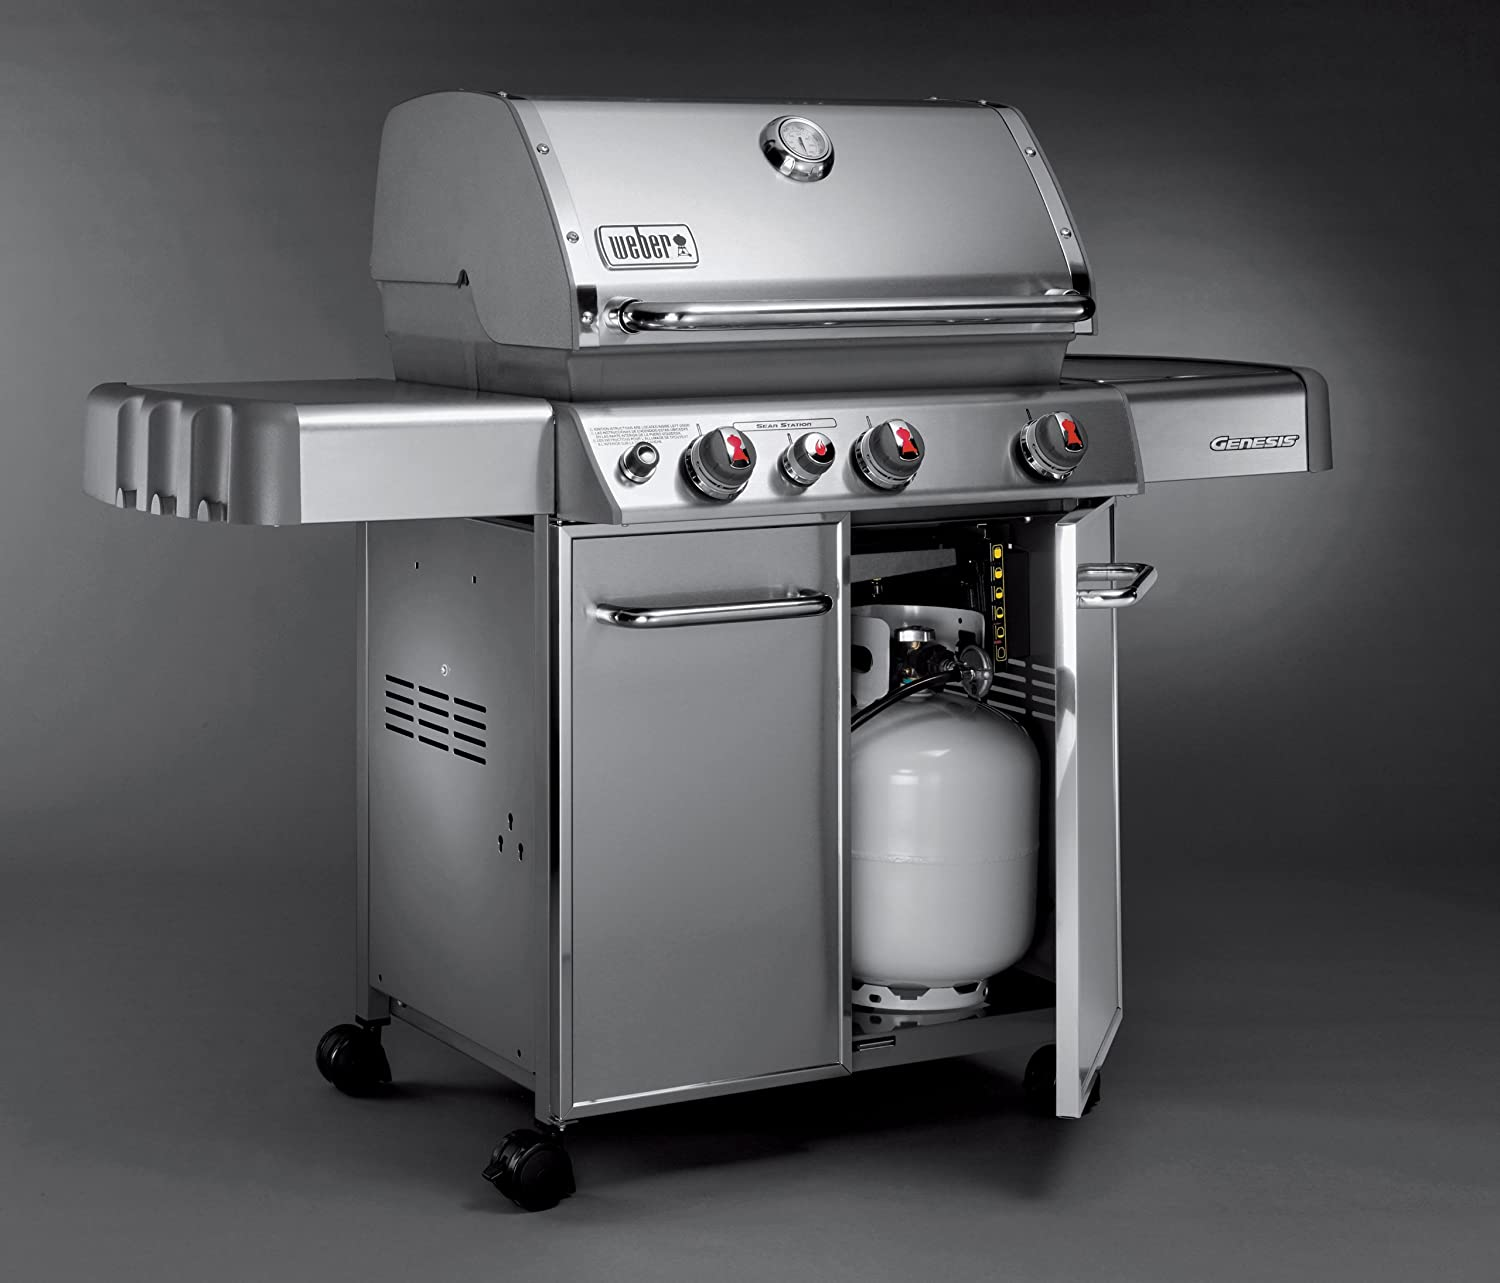 Weber genesis s 330 natural gas - Amazon Com Weber Genesis 6570001 S 330 Stainless Steel 637 Square Inch 38 000 Btu Liquid Propane Gas Grill Patio Lawn Garden